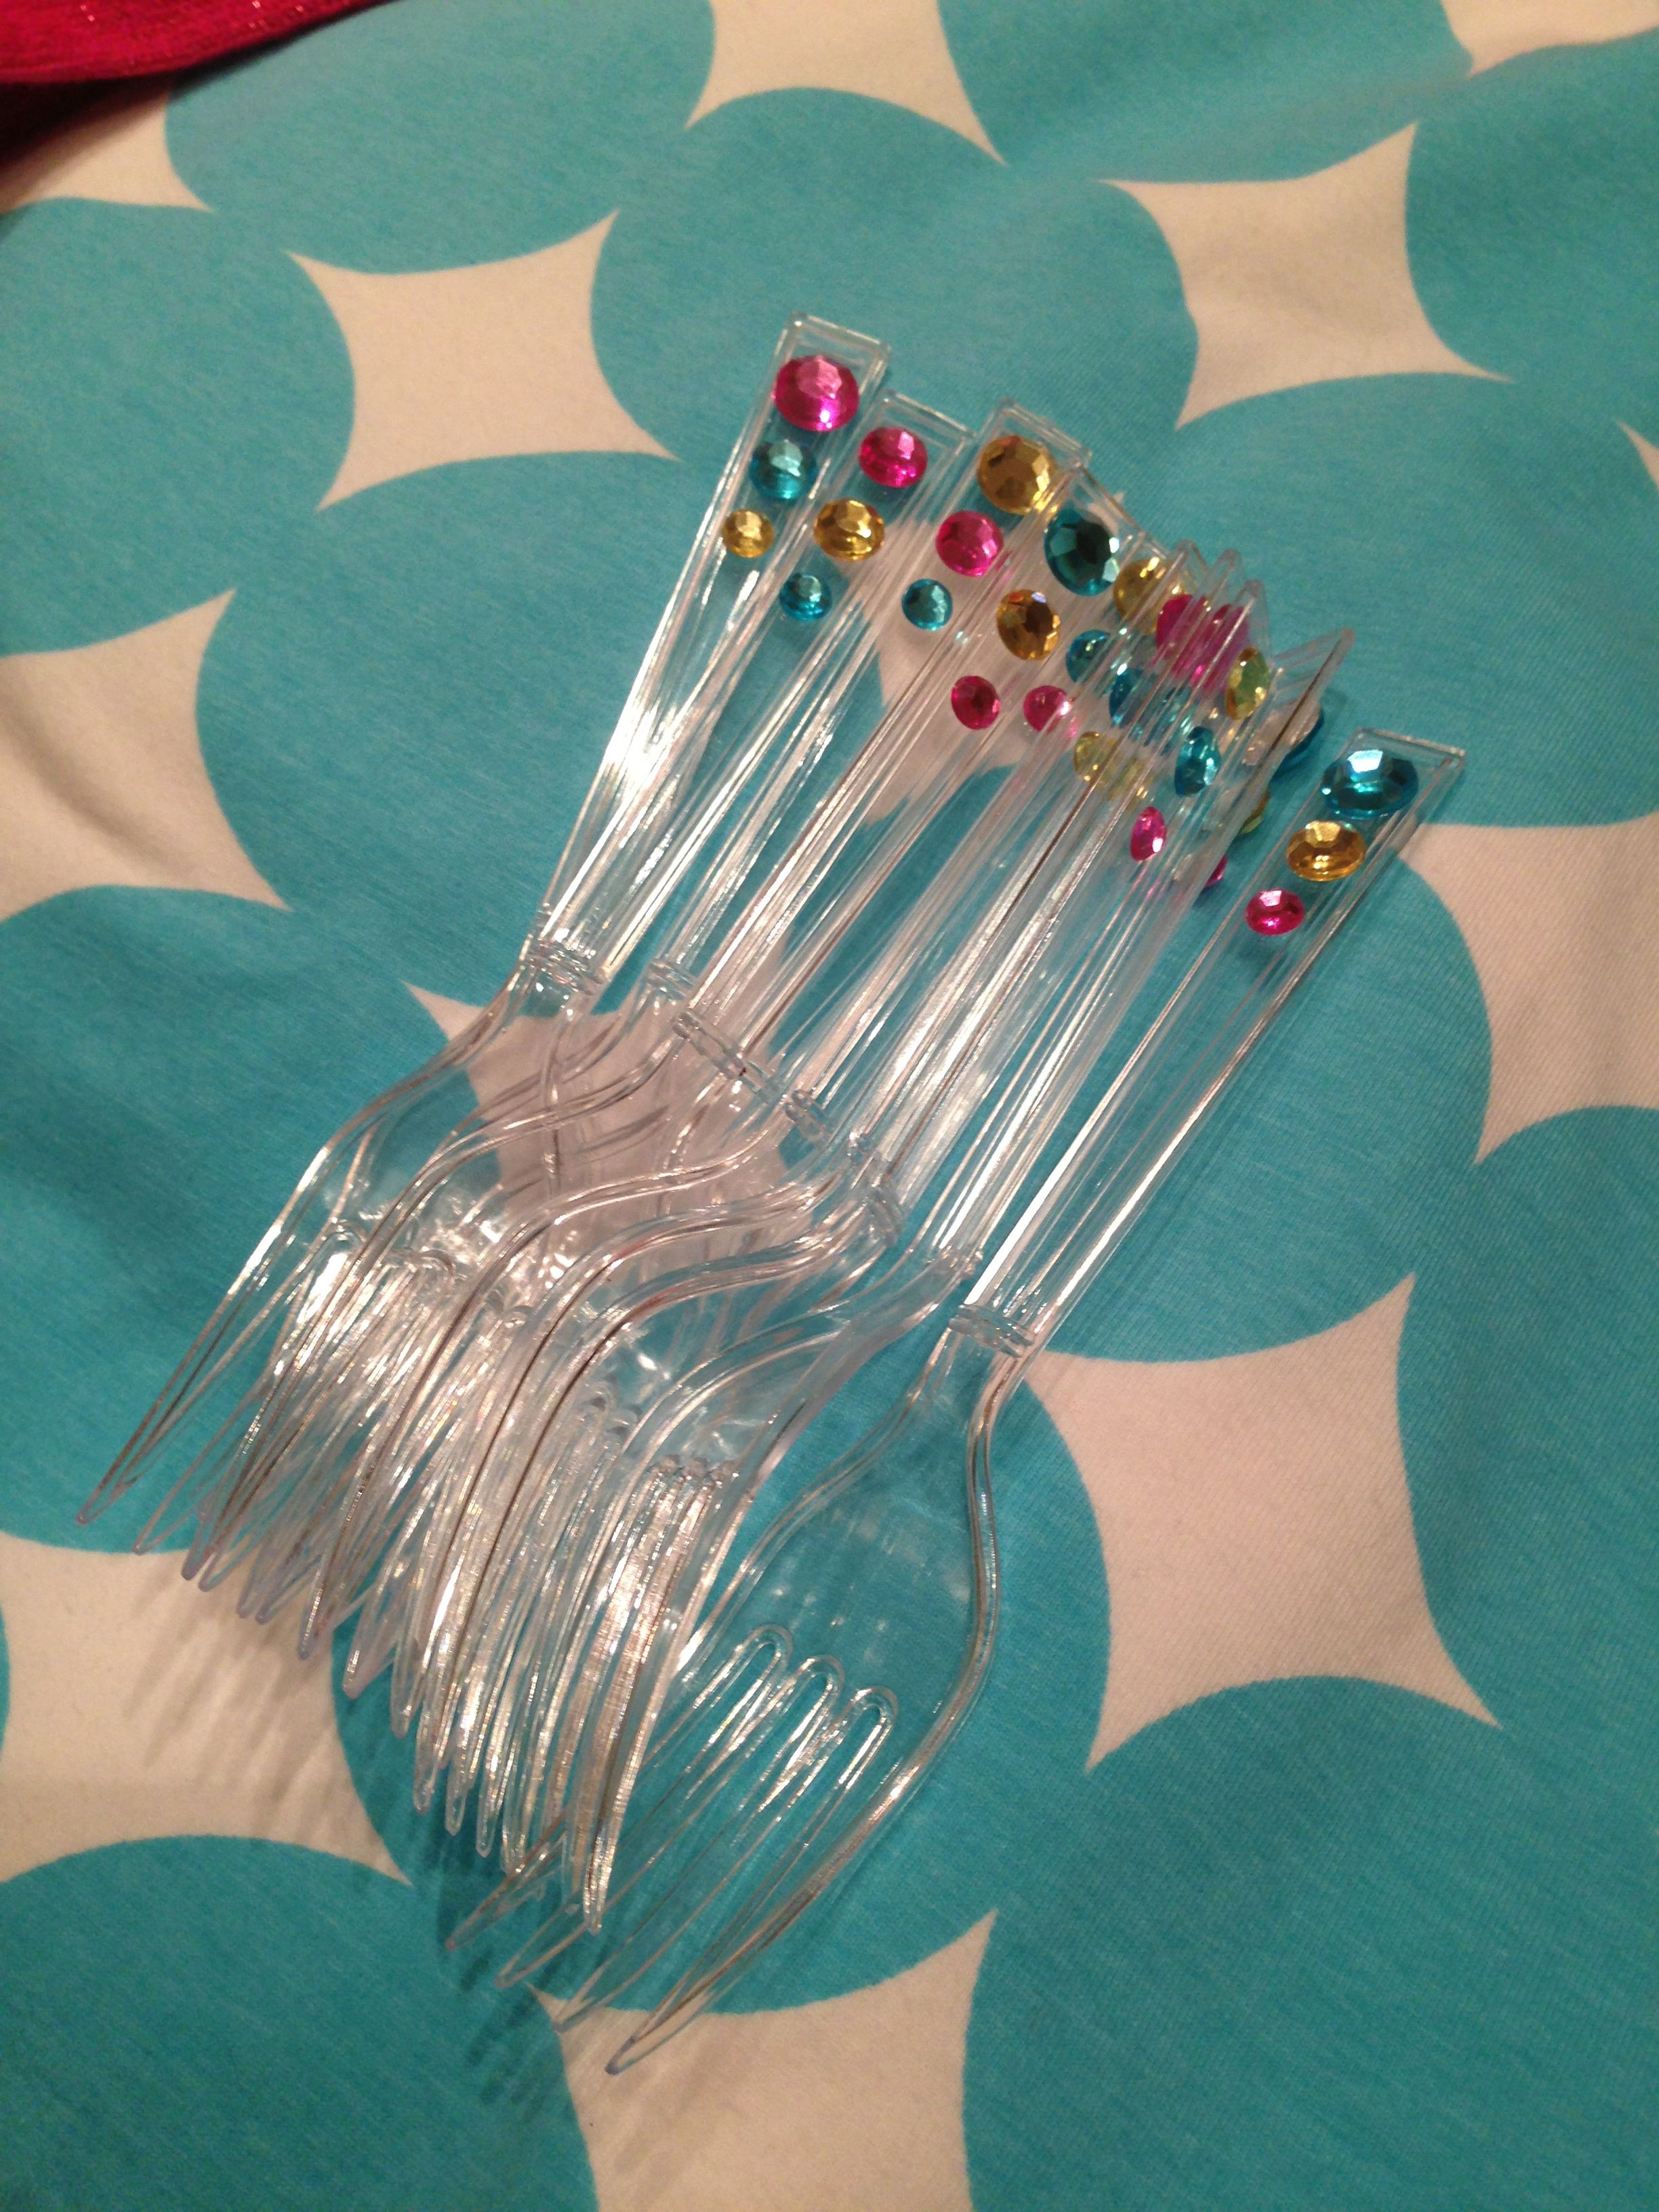 Rhinestones plus plastic forks! | Various party themes and ideas ...